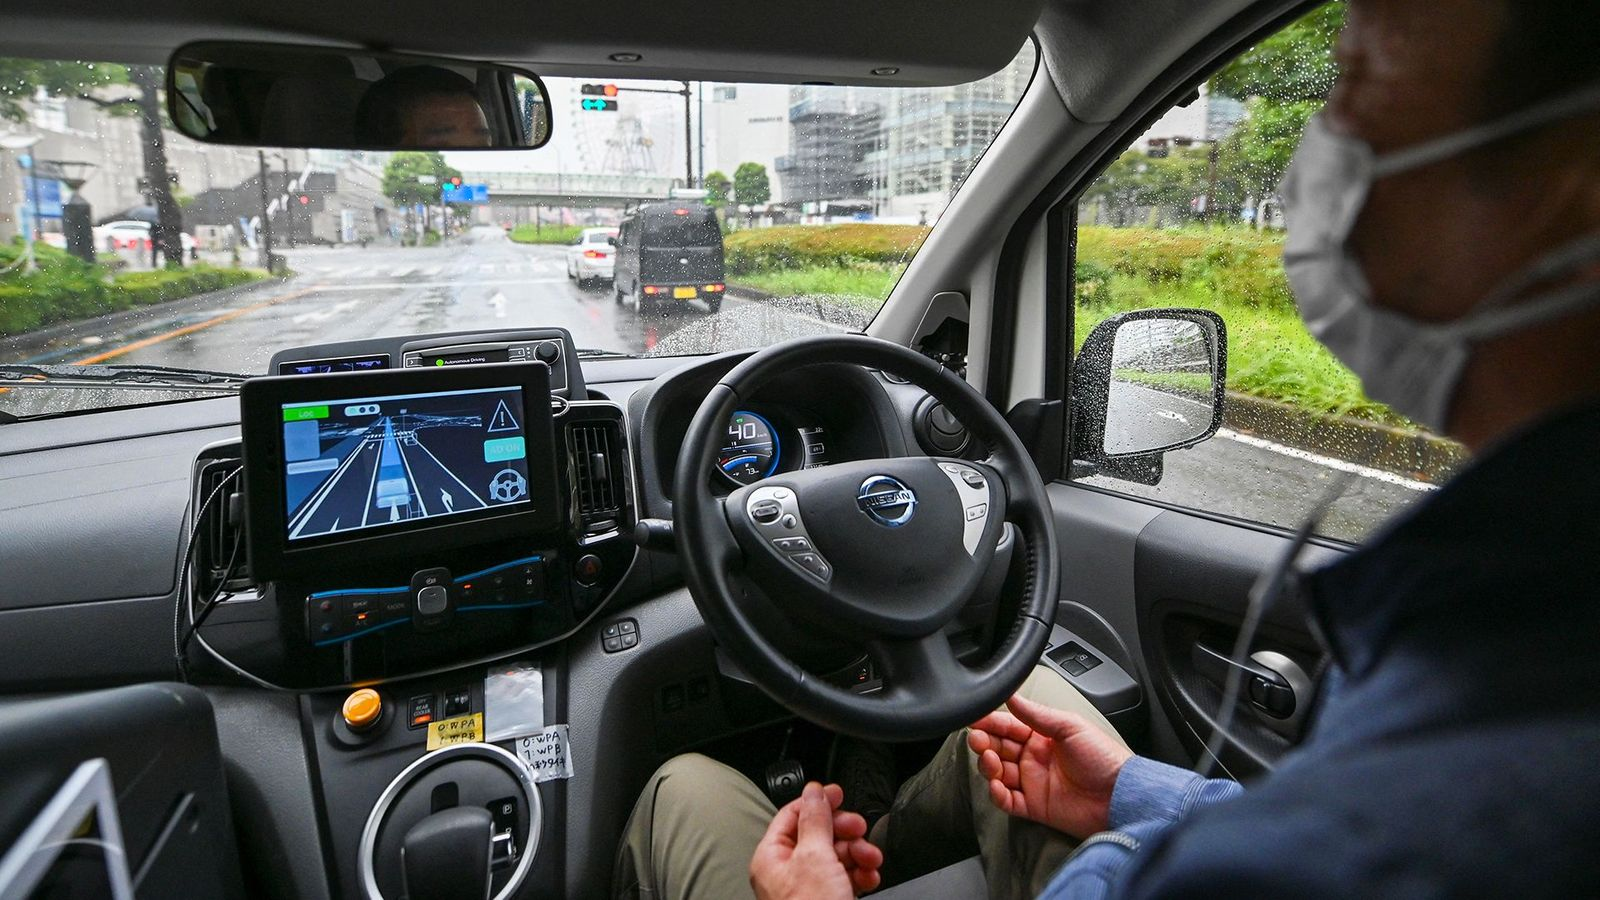 If we are to adopt self-driving vehicles it will require people to trust the technology entirely – will that be a good thing? (Credit: Kazuhiro Nogi/AFP/Getty Images)